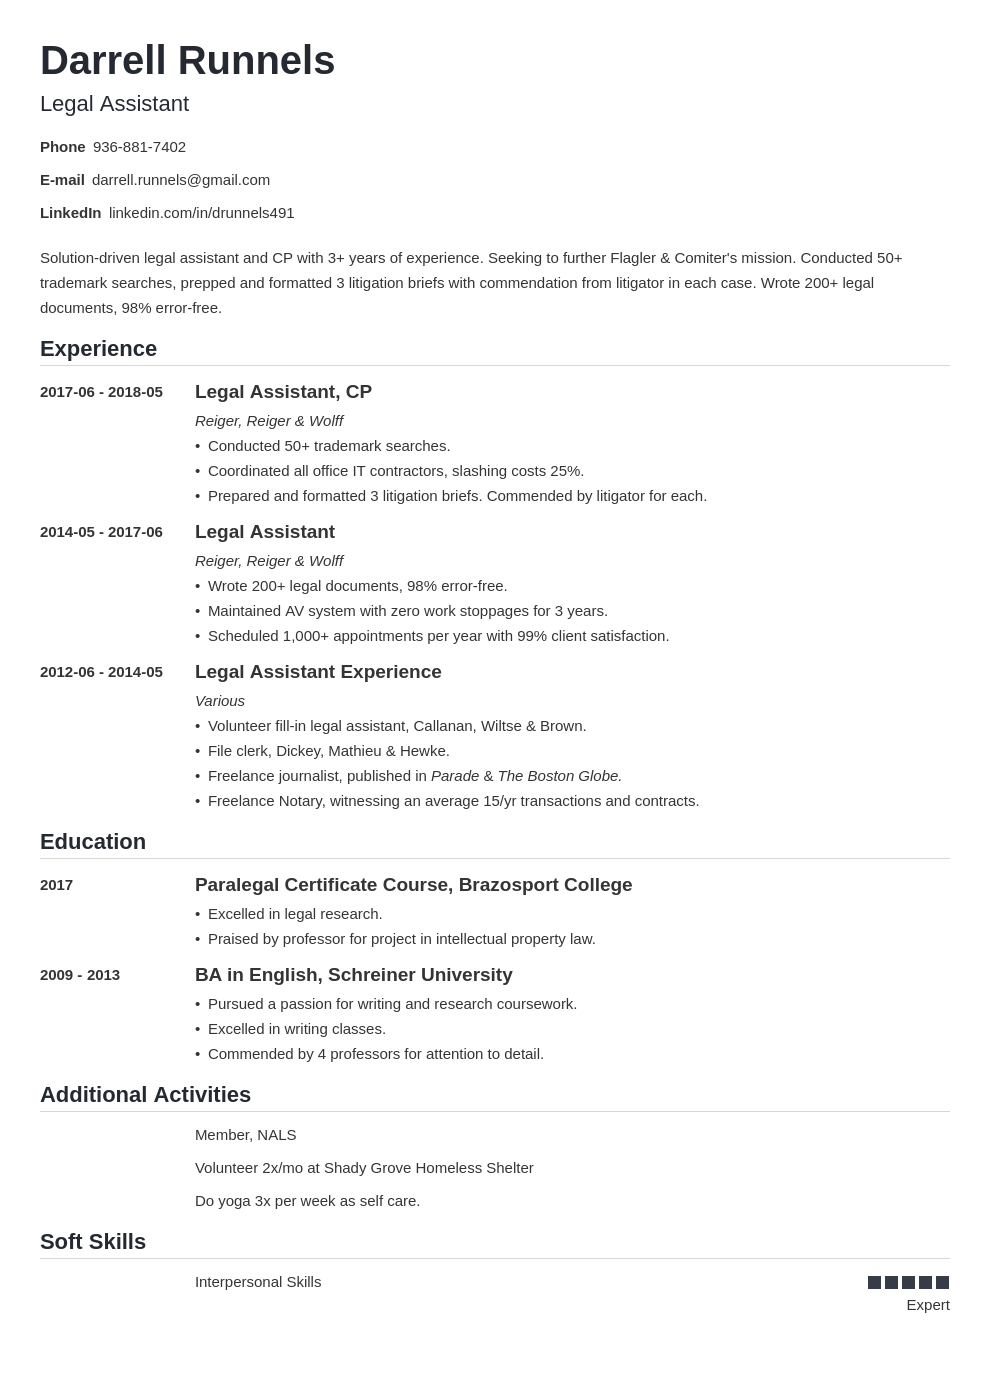 Legal Assistant Resume in 2020 Resume examples, Job